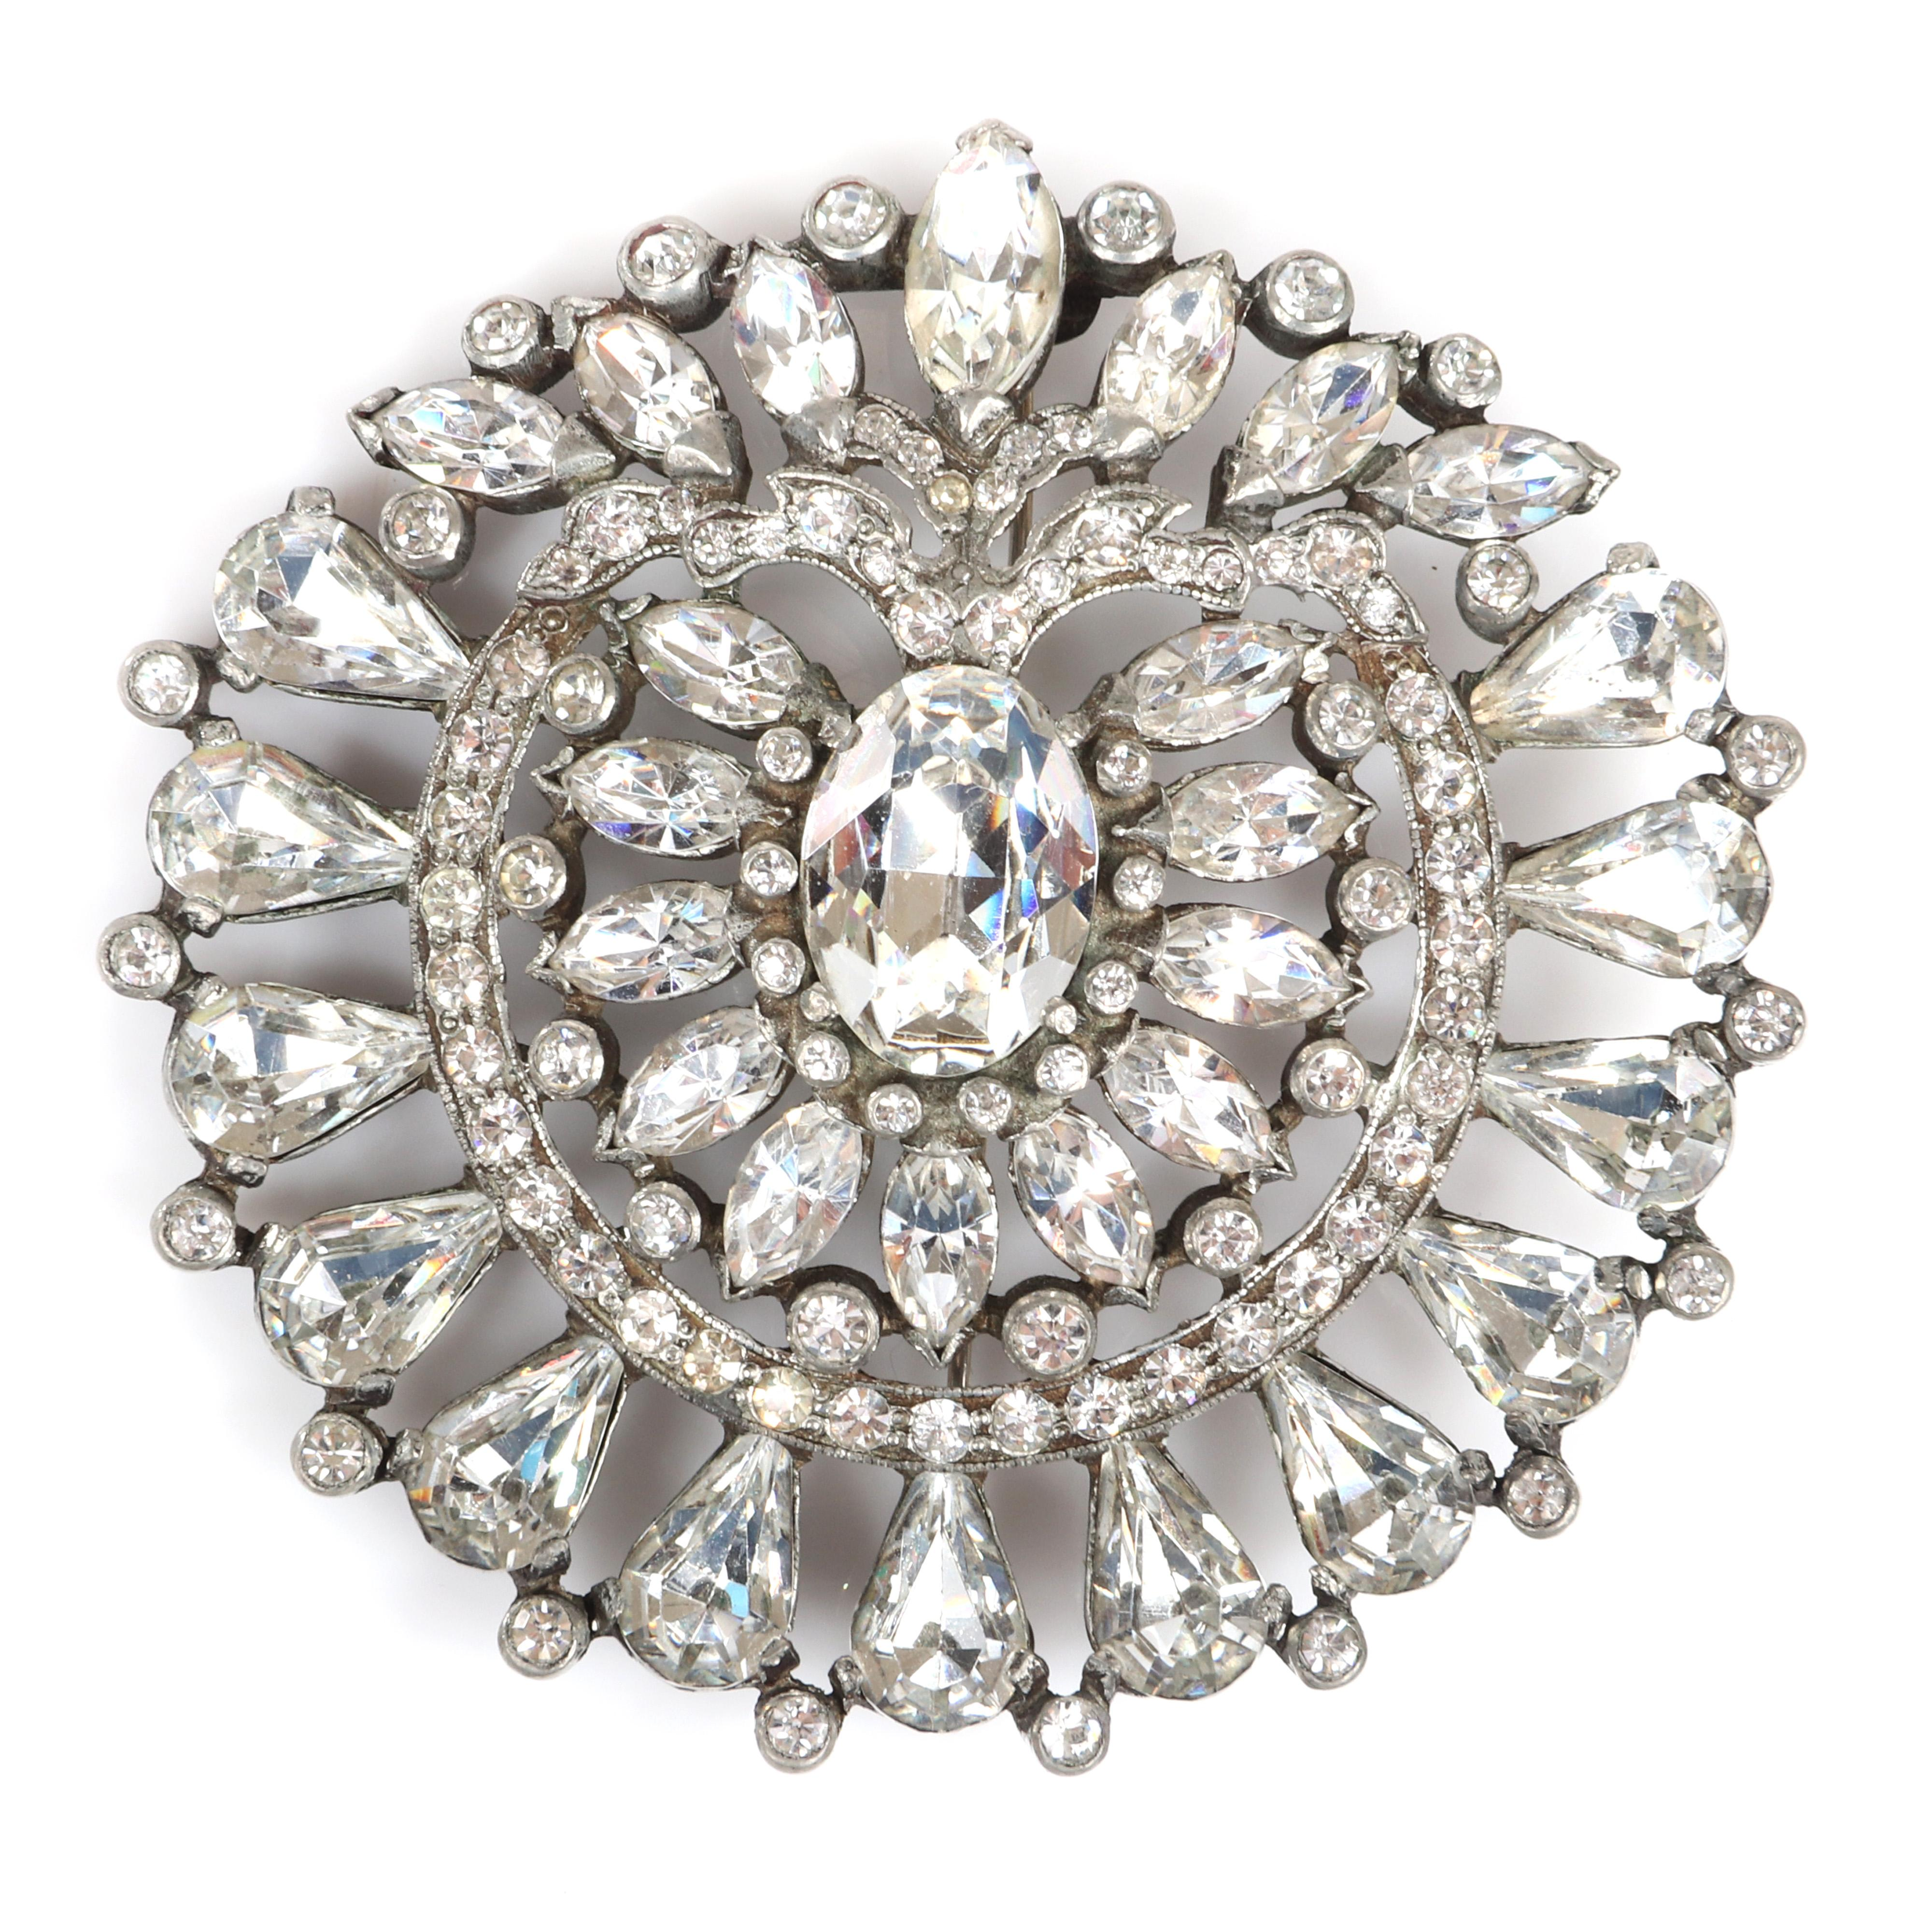 """Eisenberg Original circular brooch with silver pot metal, familiar center design of marquise stones framing a large oval crystal with pear and bezel-set rhinestones, c. 1940. 3"""" diam"""